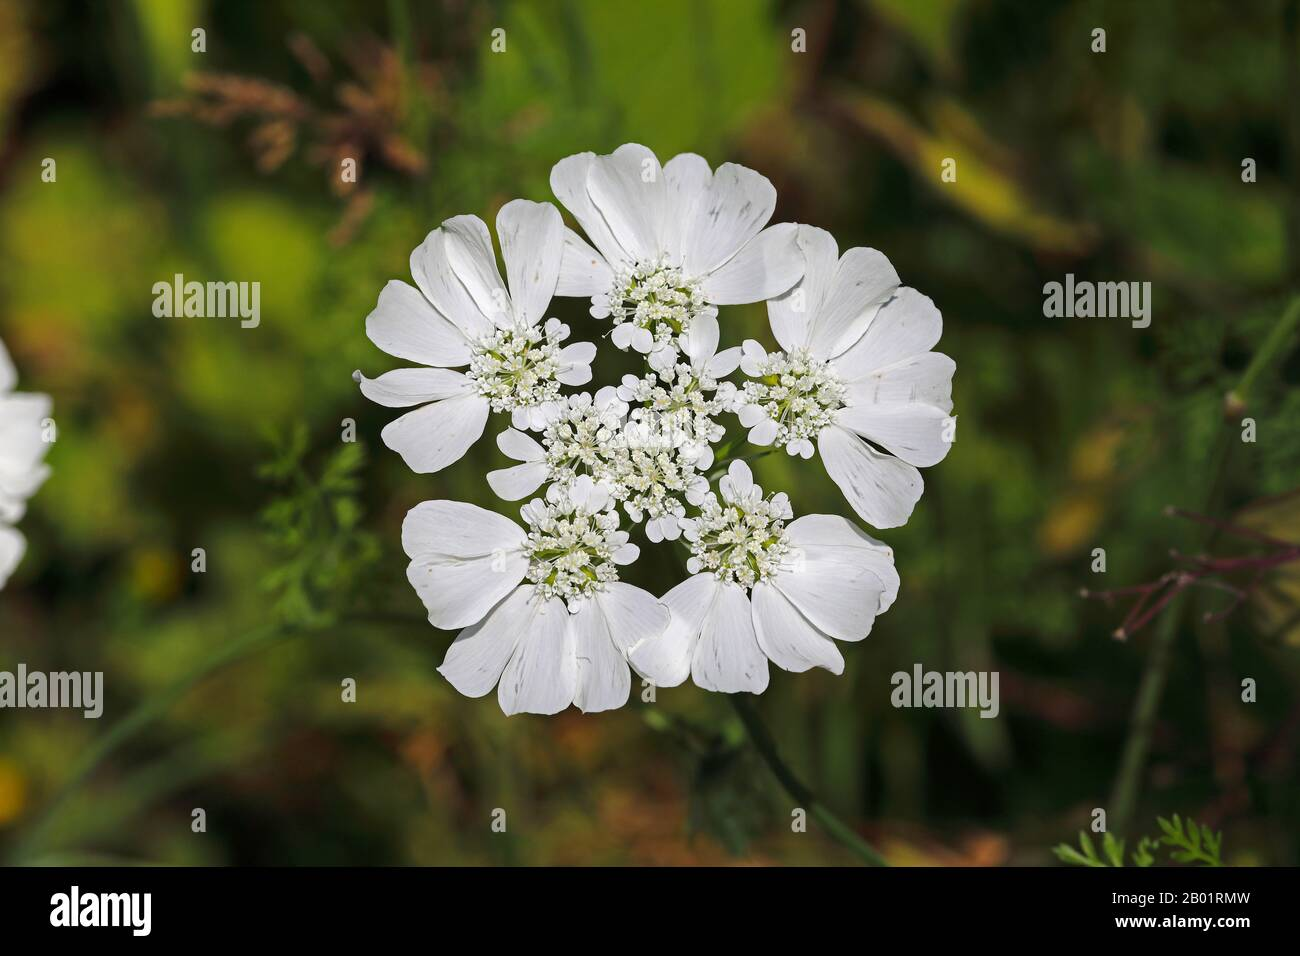 White lace flower, White laceflower, Minoan Lace (Orlaya grandiflora, Caucalis grandiflora), inflorescence, Montenegro, Skadarsee National Park Stock Photo